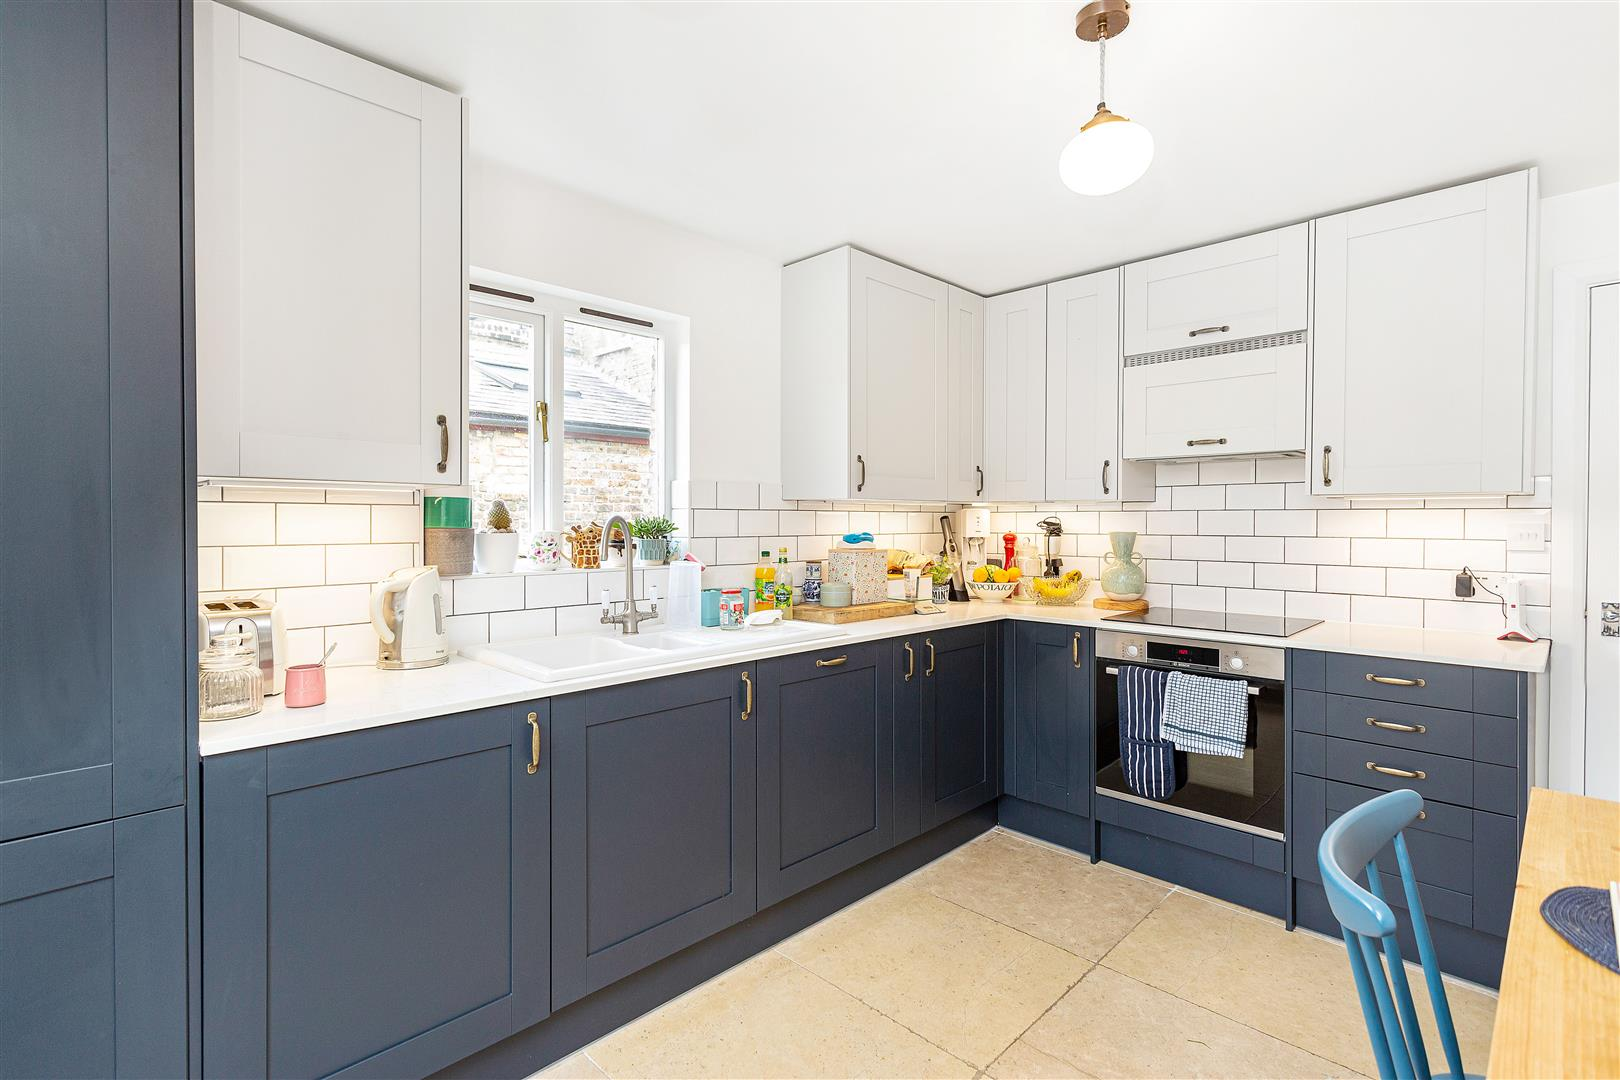 Photo of a kitchen and in this case one of this properties best features, and you can see it's pretty special.